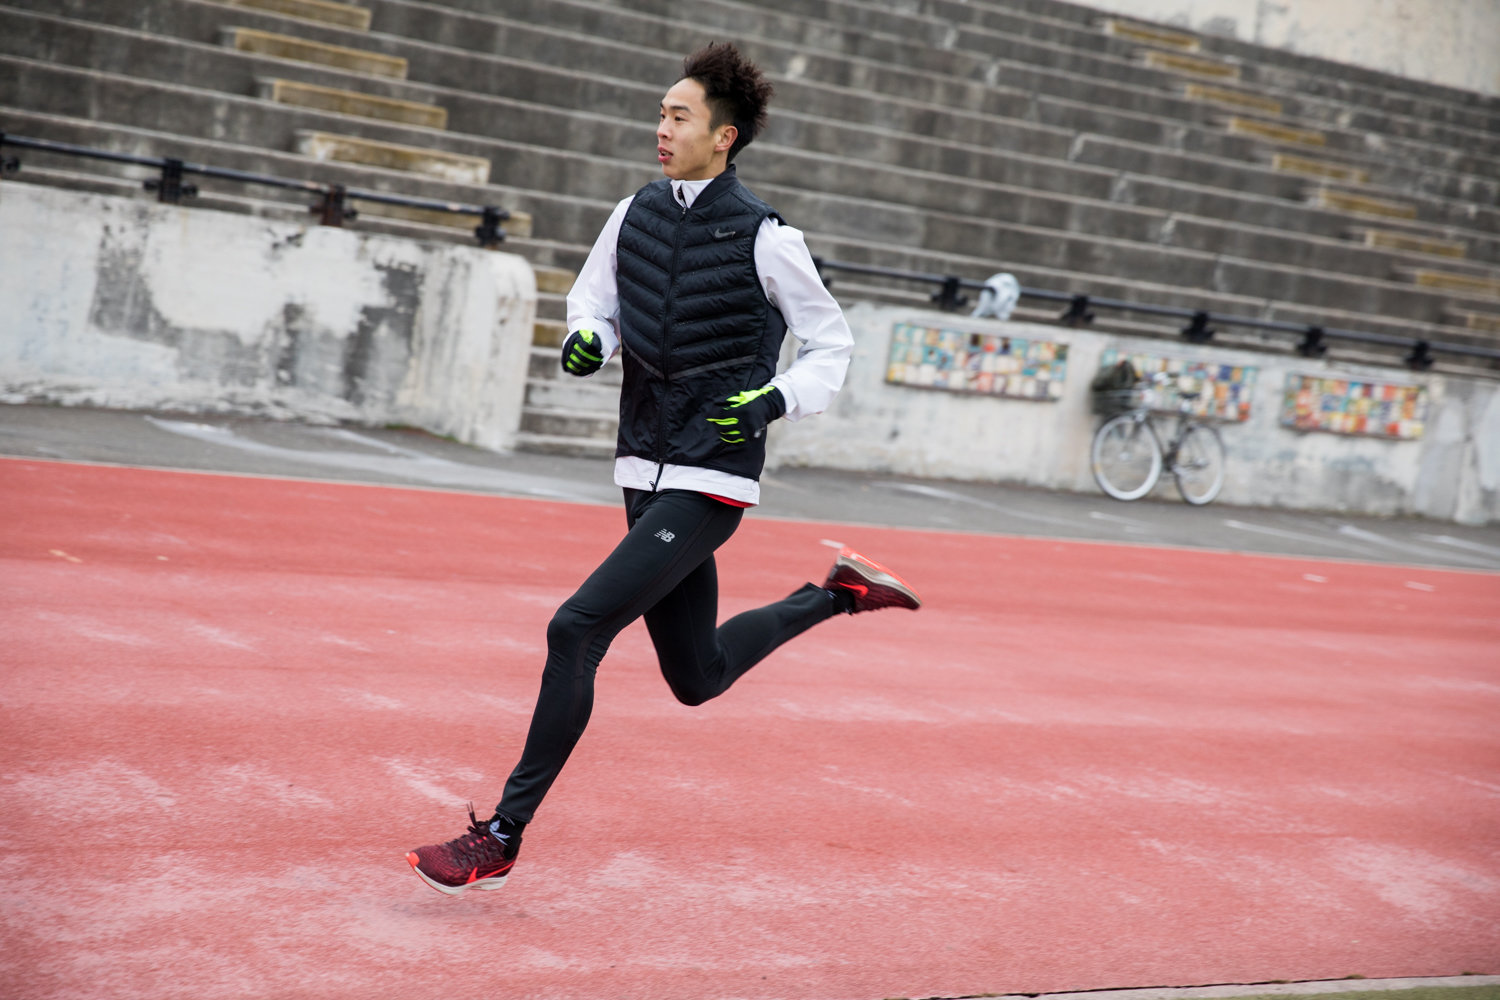 Wang Shaojie runs during a training session in Van Cortlandt Park with Manhattan College running coach Matt Centrowitz. Wang and several of his colleagues traveled to the United States to train with Centrowitz ahead of the Olympics in Tokyo.